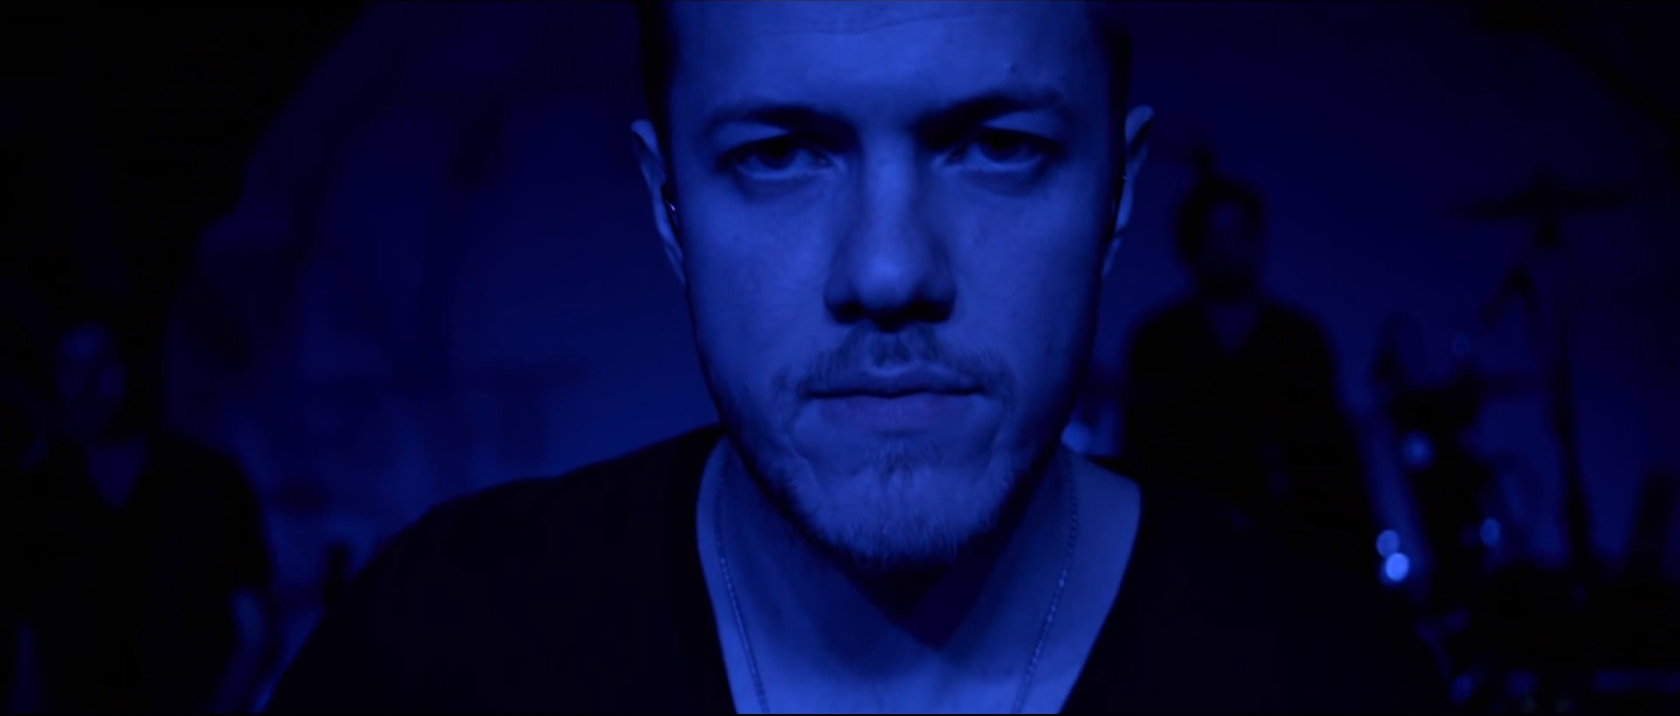 Dan Reynolds  lead singer of Imagine Dragons  deals with his demon in    Imagine Dragons Lead Singer